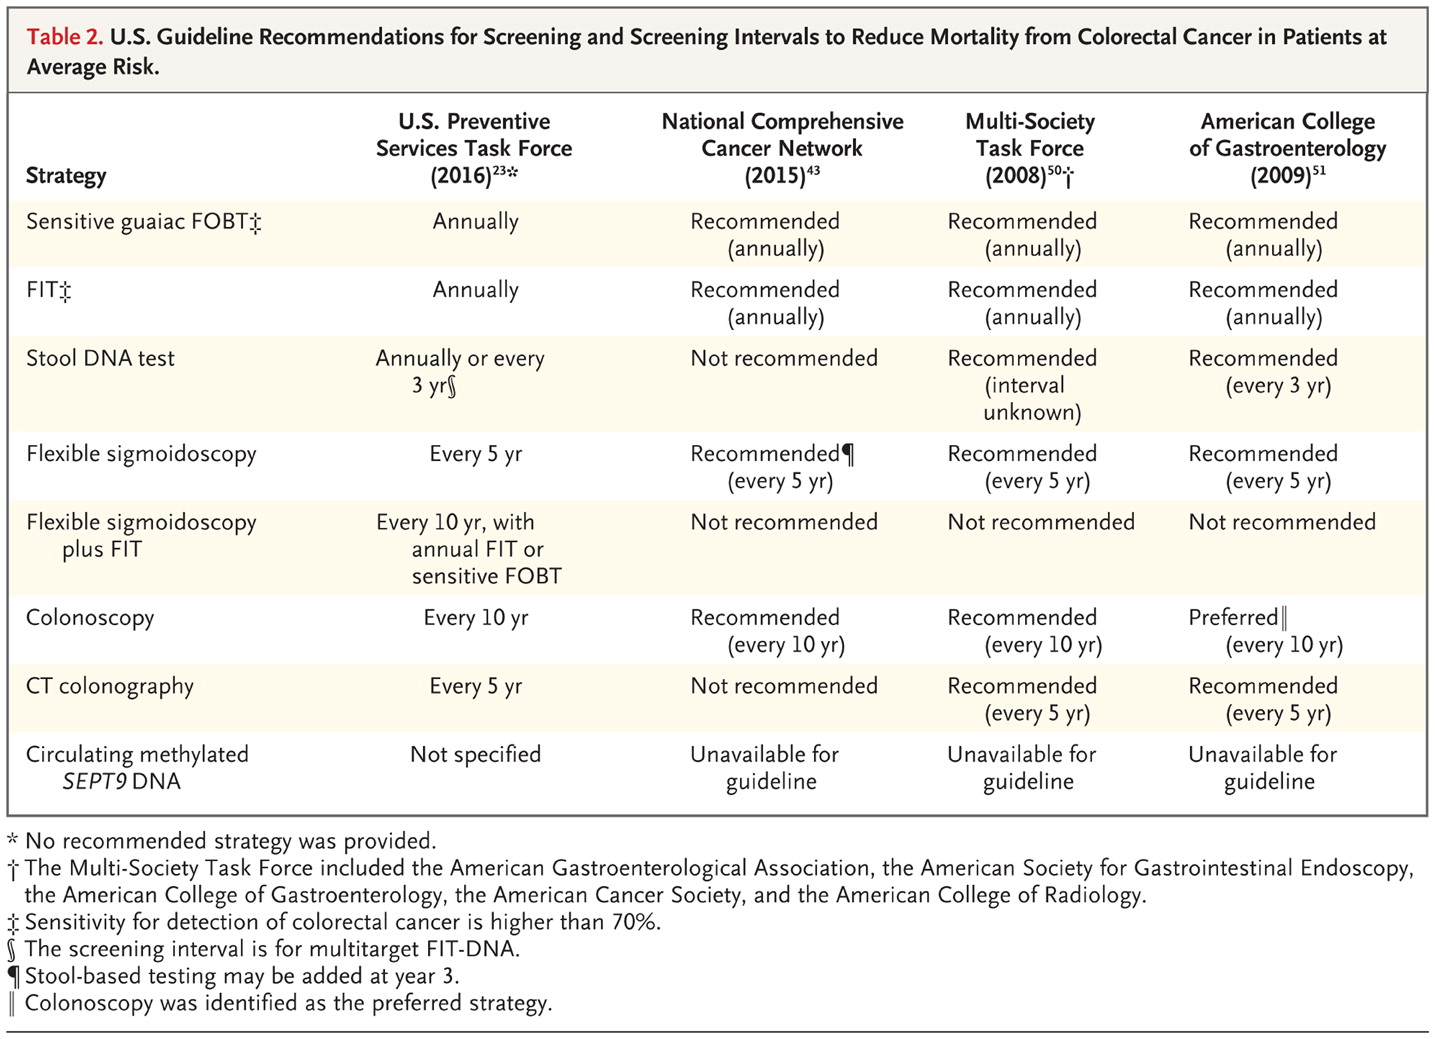 colorectal cancer screening guidelines)